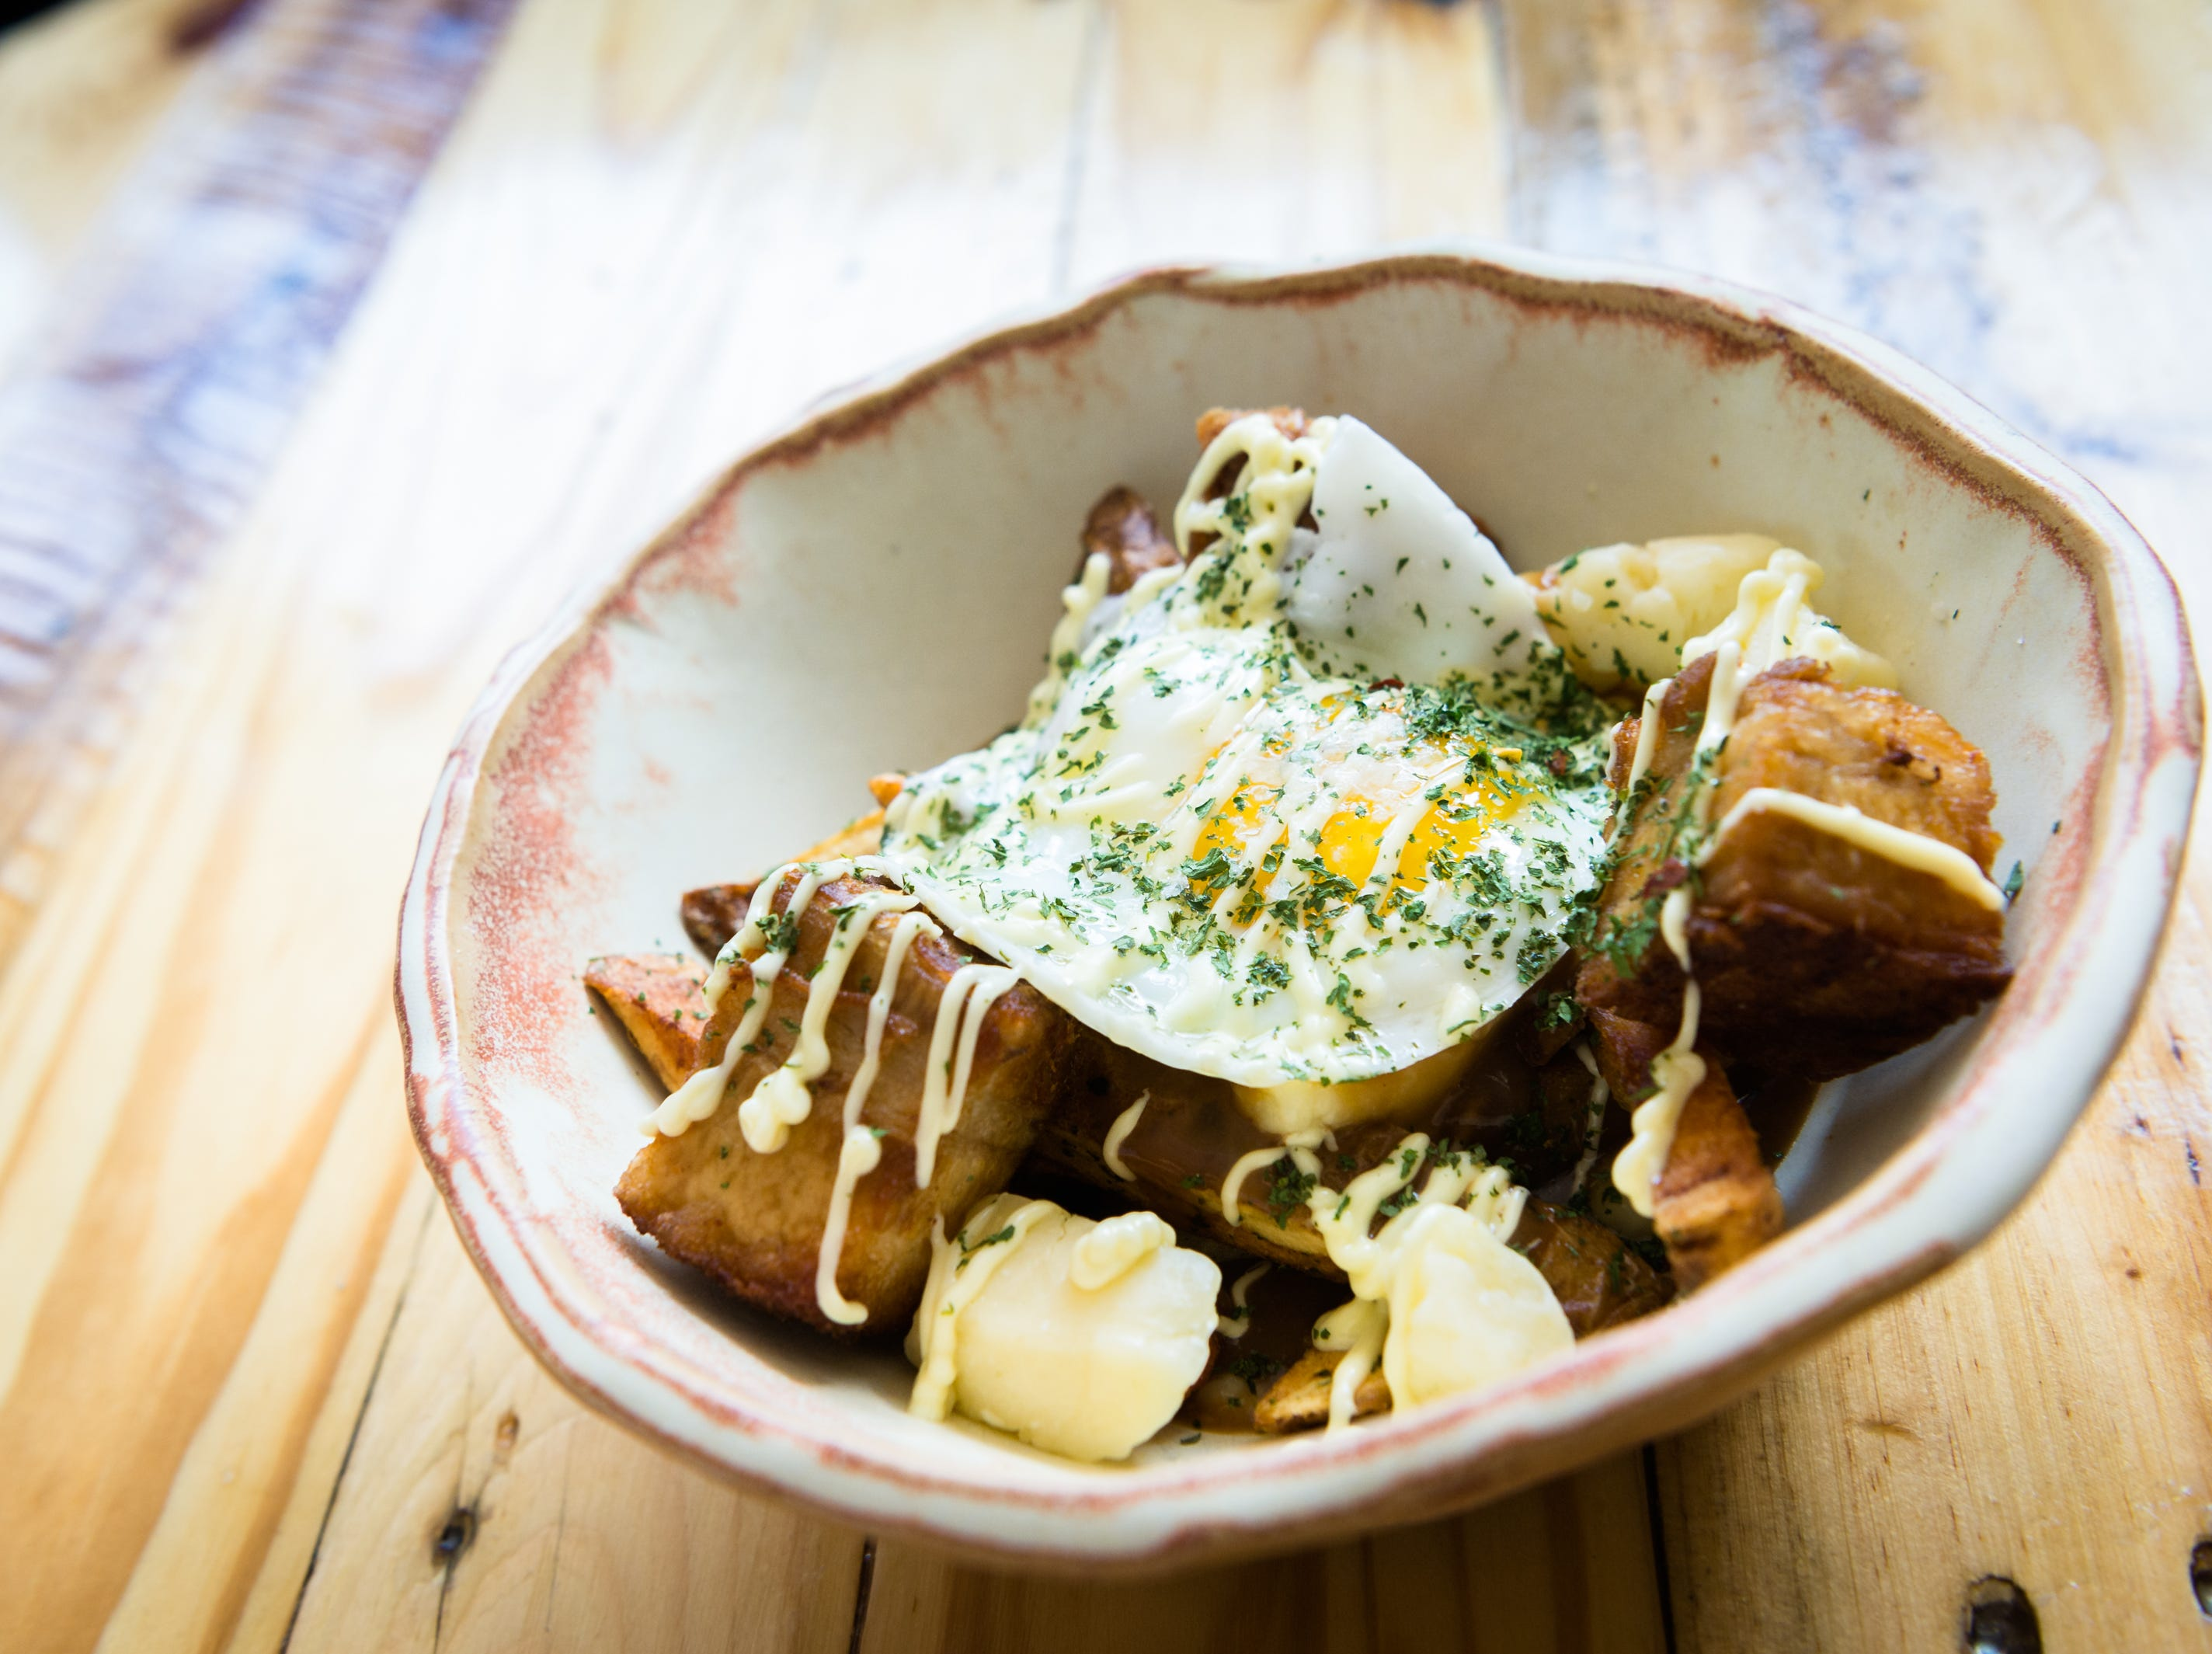 The Good the Bad & the Happy poutine dish with pork belly, truffle mayo, foie gras mousse & gravy, frites, curd, and sunny eggserved at BadHappy Poutine on Merrimon Avenue in Asheville.